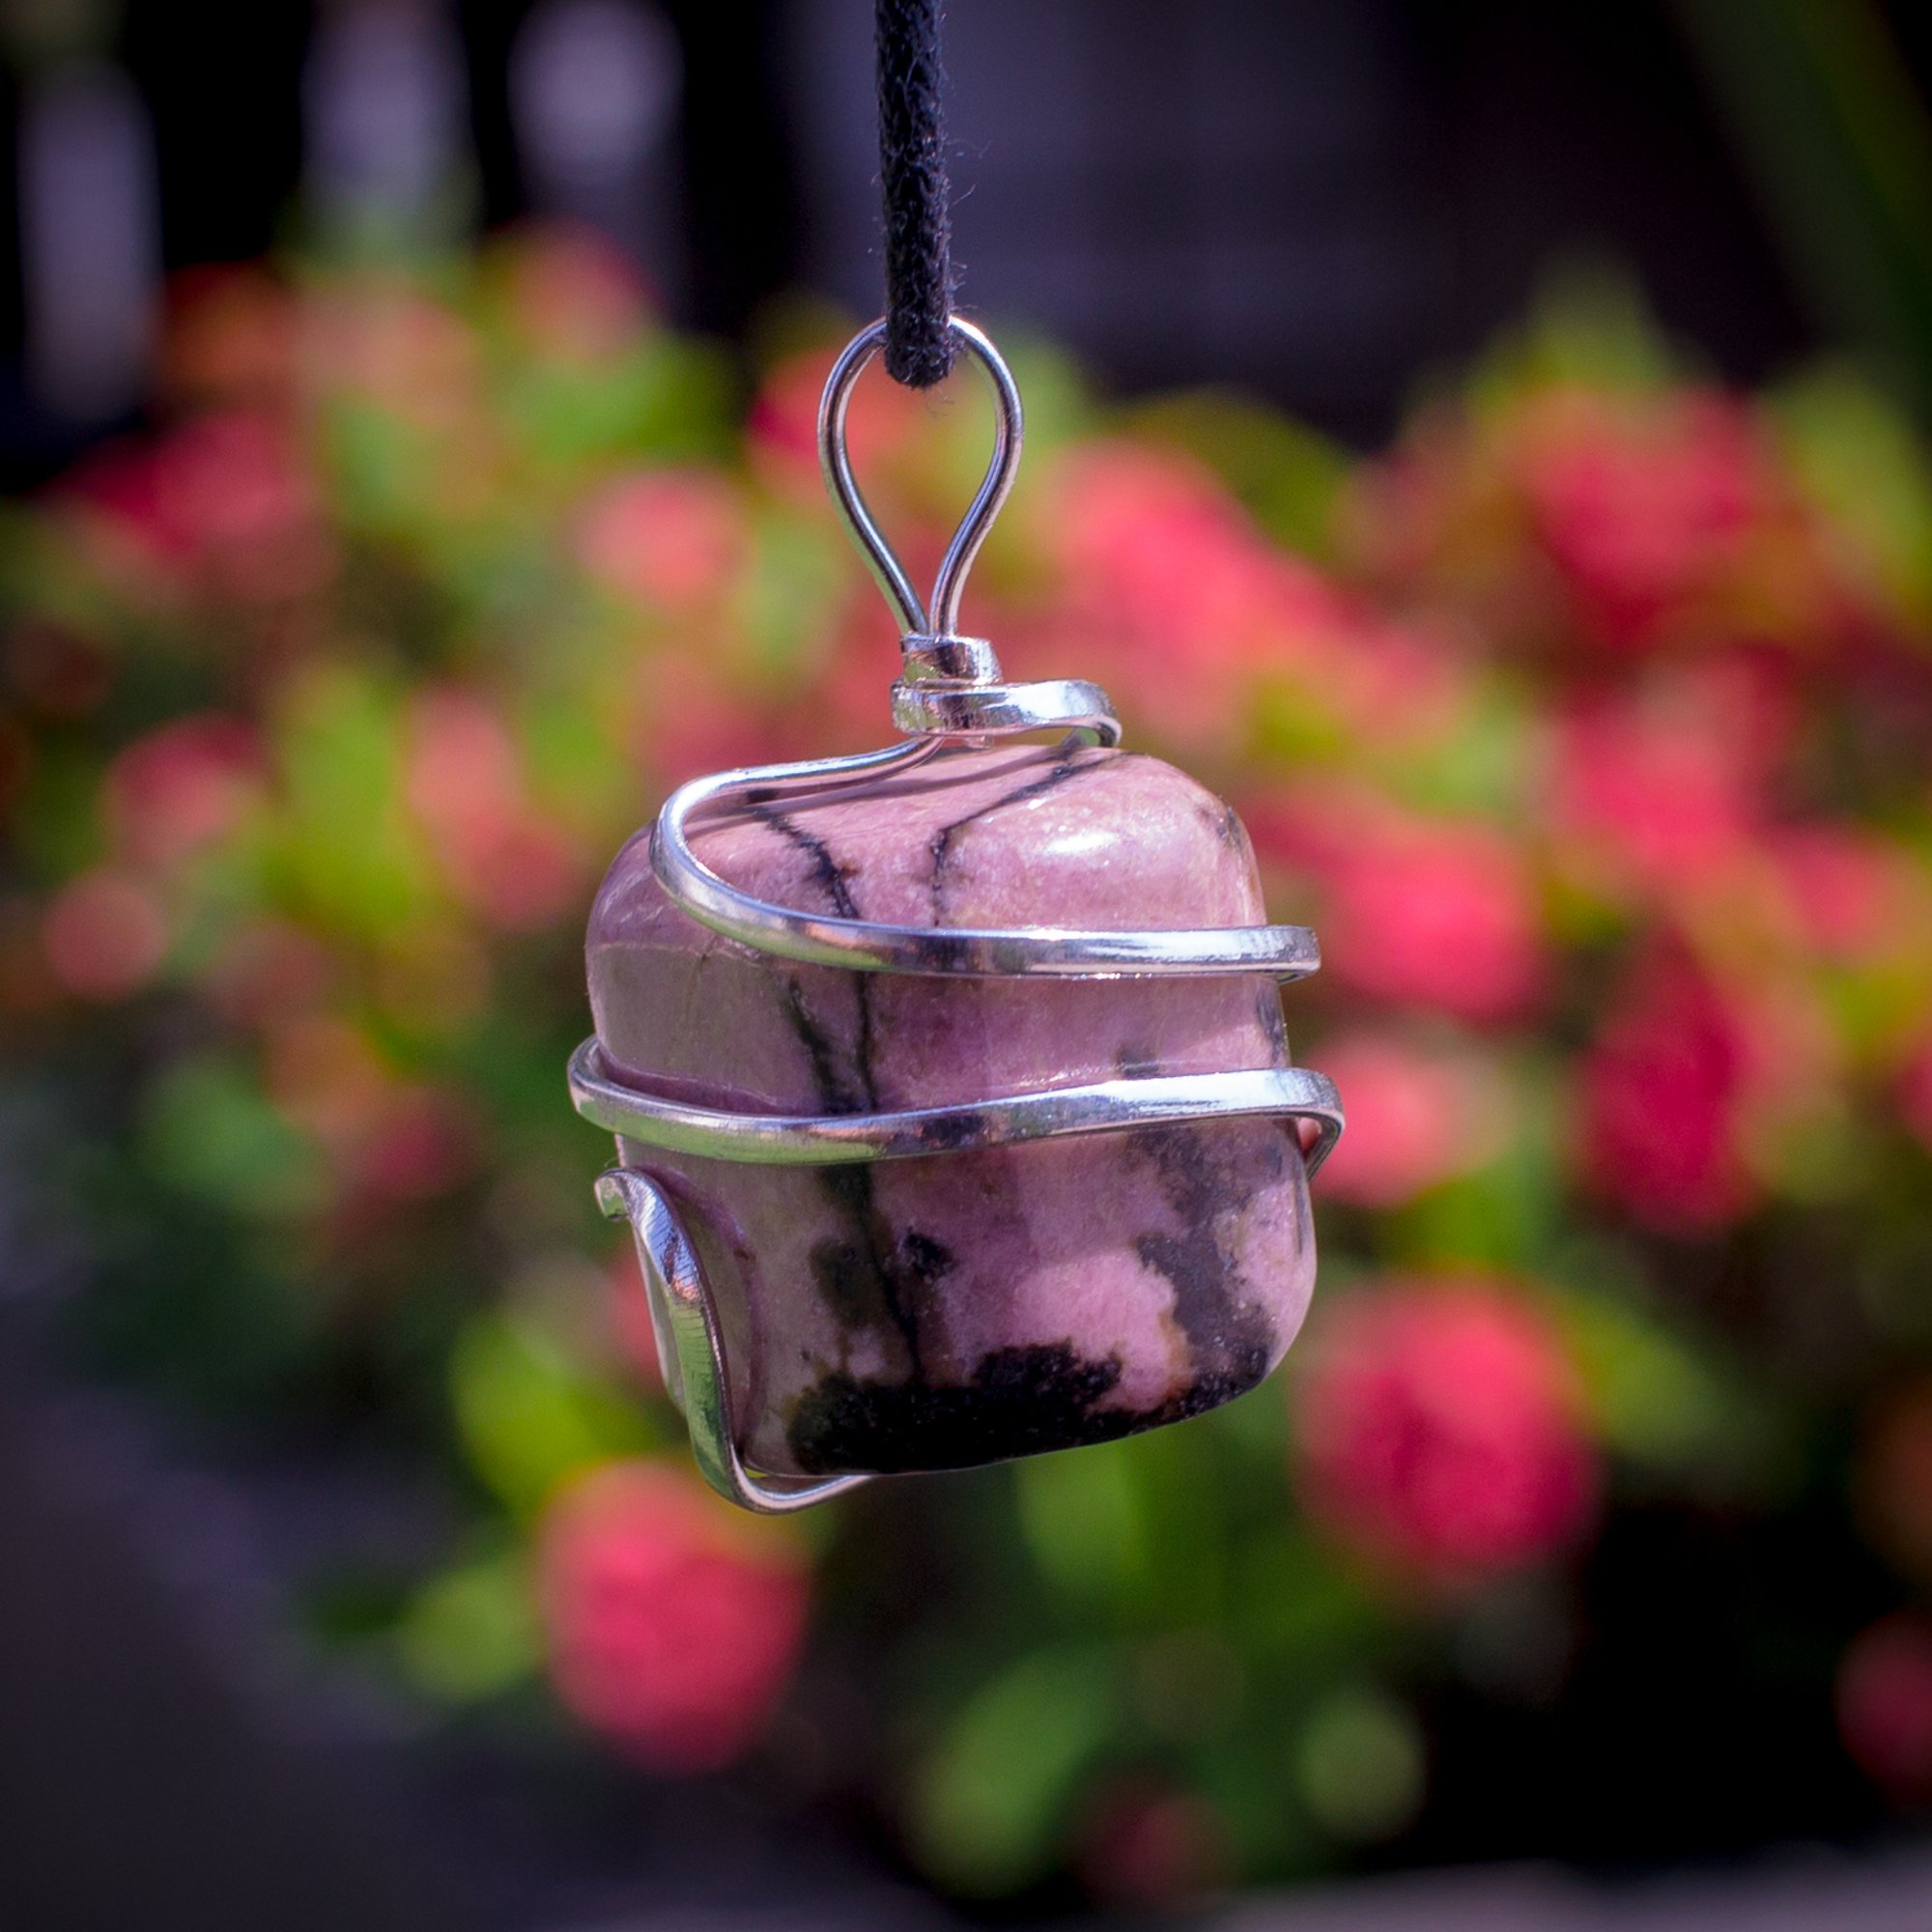 Rhodonite Crystal Pendant Necklace – Compassion Forgiveness Release of Fear Emotional Healing Heartbreak Relationships - Authentic Stone on Adjustable Length Cord - Real Gemstone Chakra Healing Charm by Ayana Wellness (Image #2)